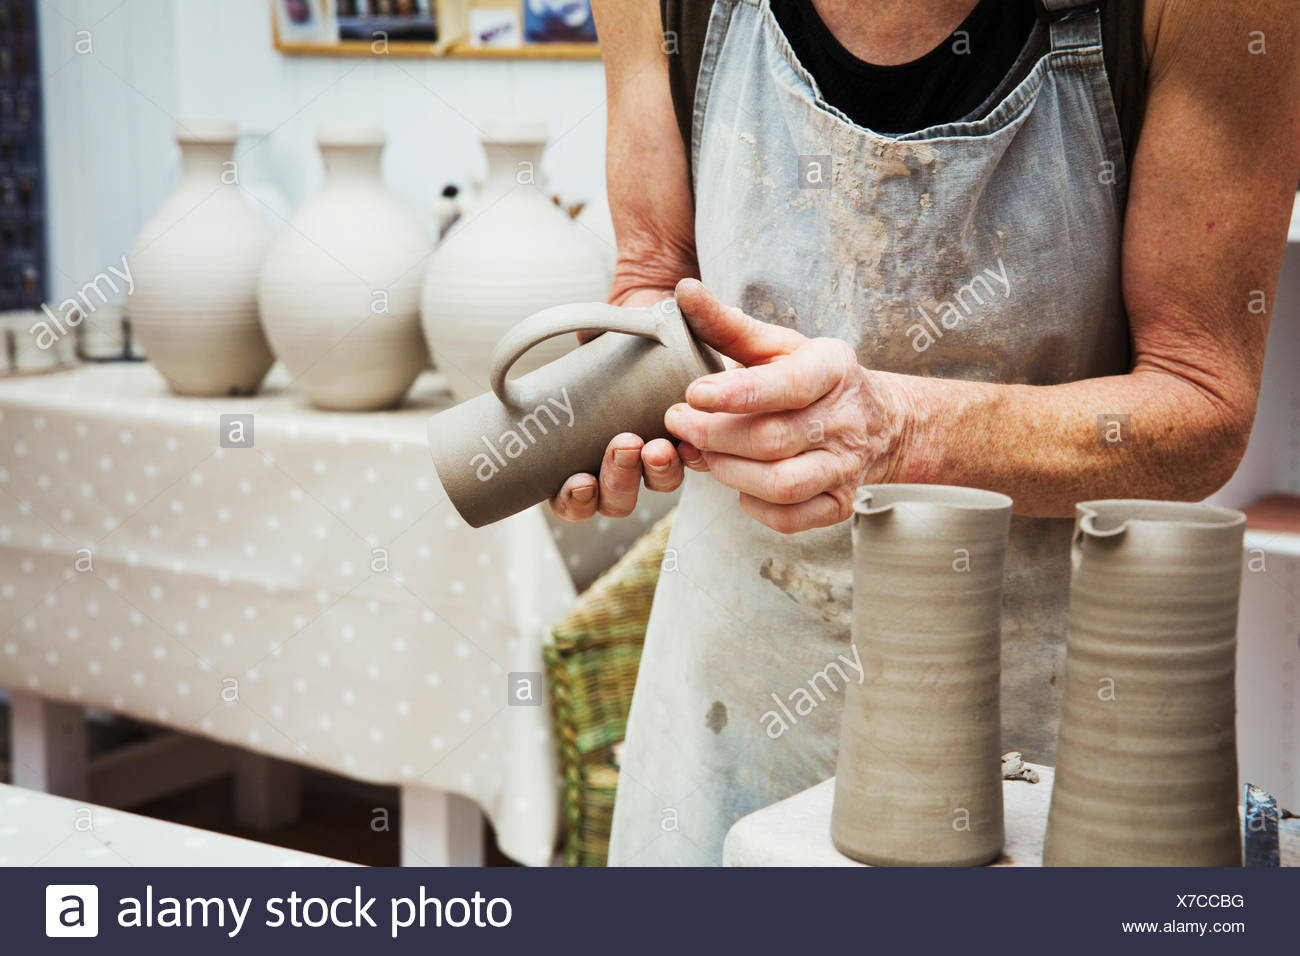 A potter handling a wet clay pot, smoothing the bottom and preparing it for kiln firing. - Stock Image